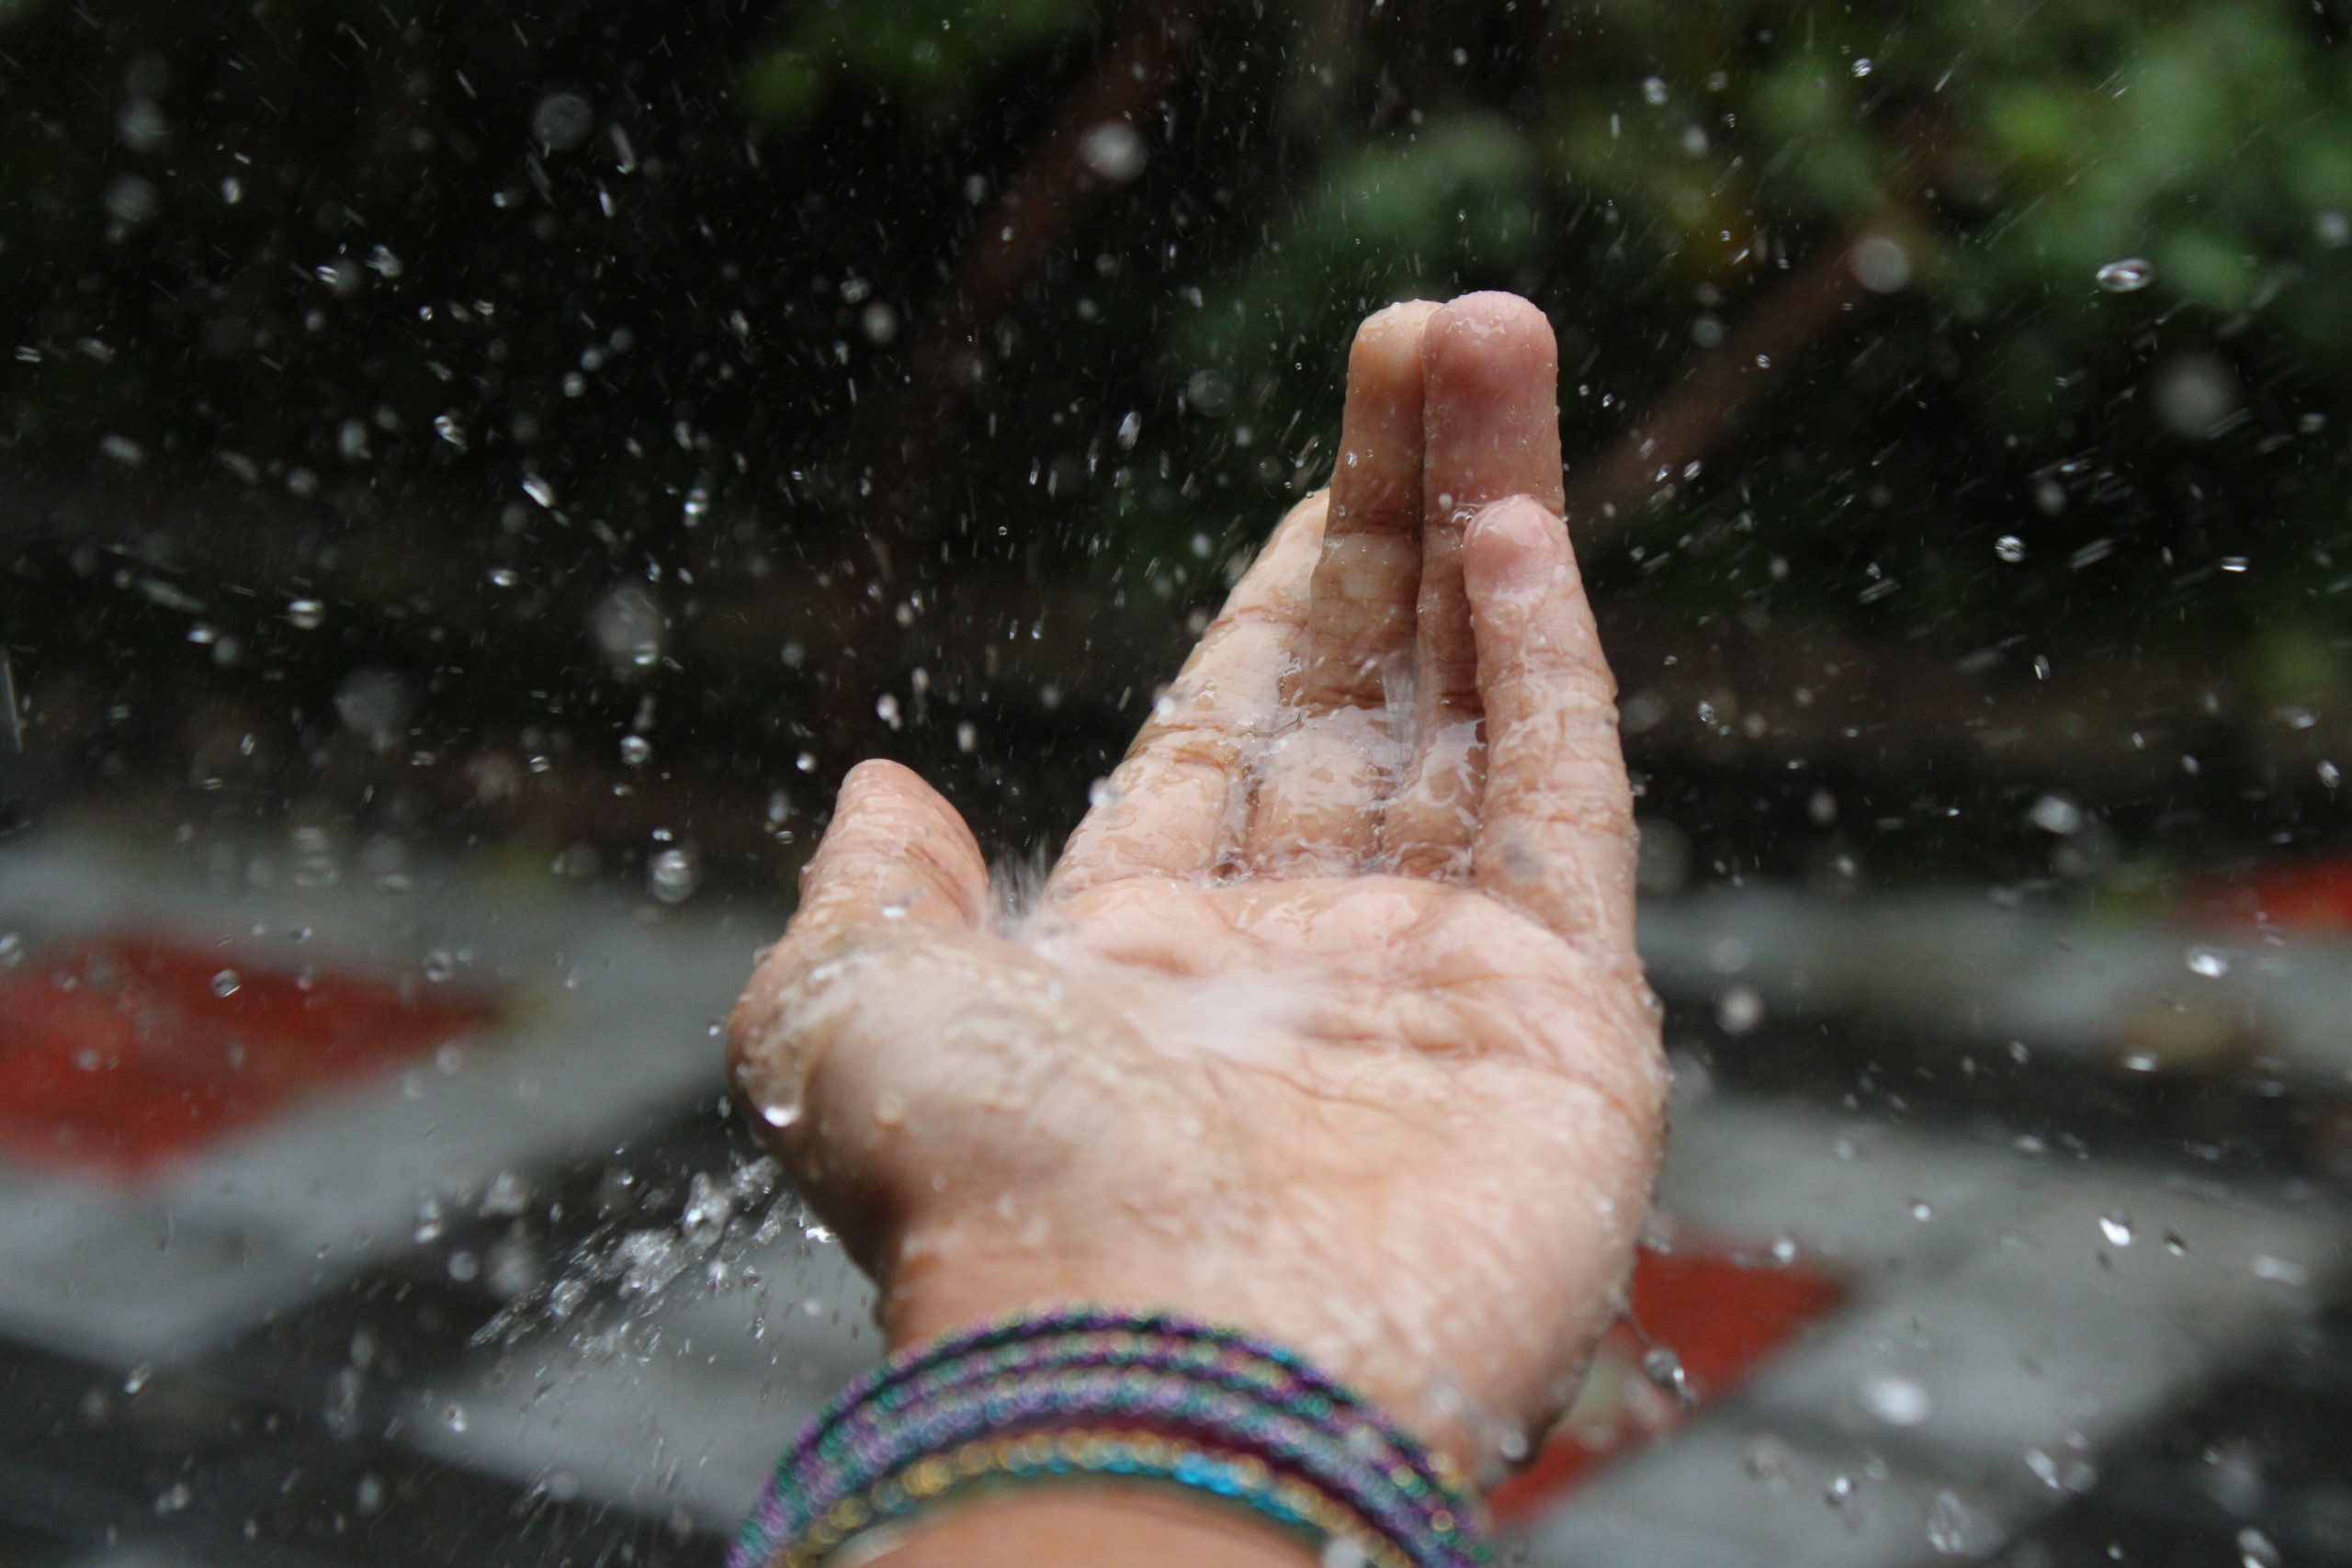 Let the raindrops dance in my hands